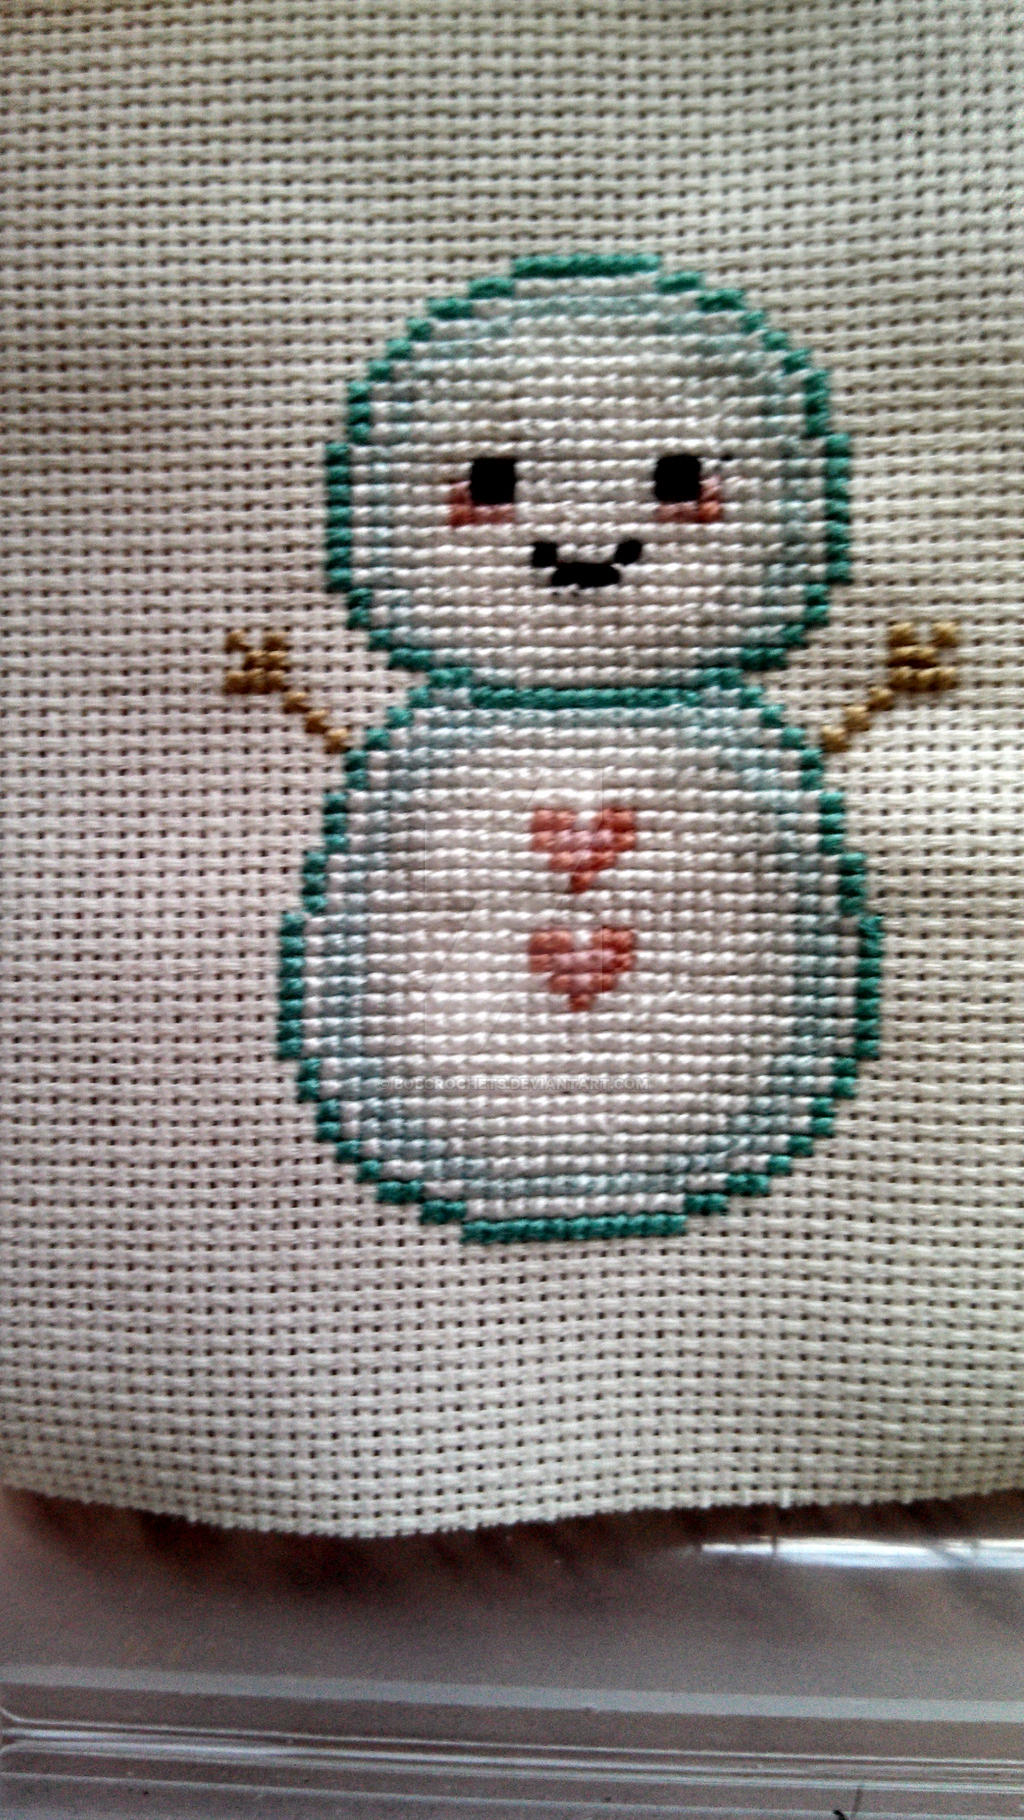 Adorable Snowman Christmas Ornament Cross Stitch by bobcrochets